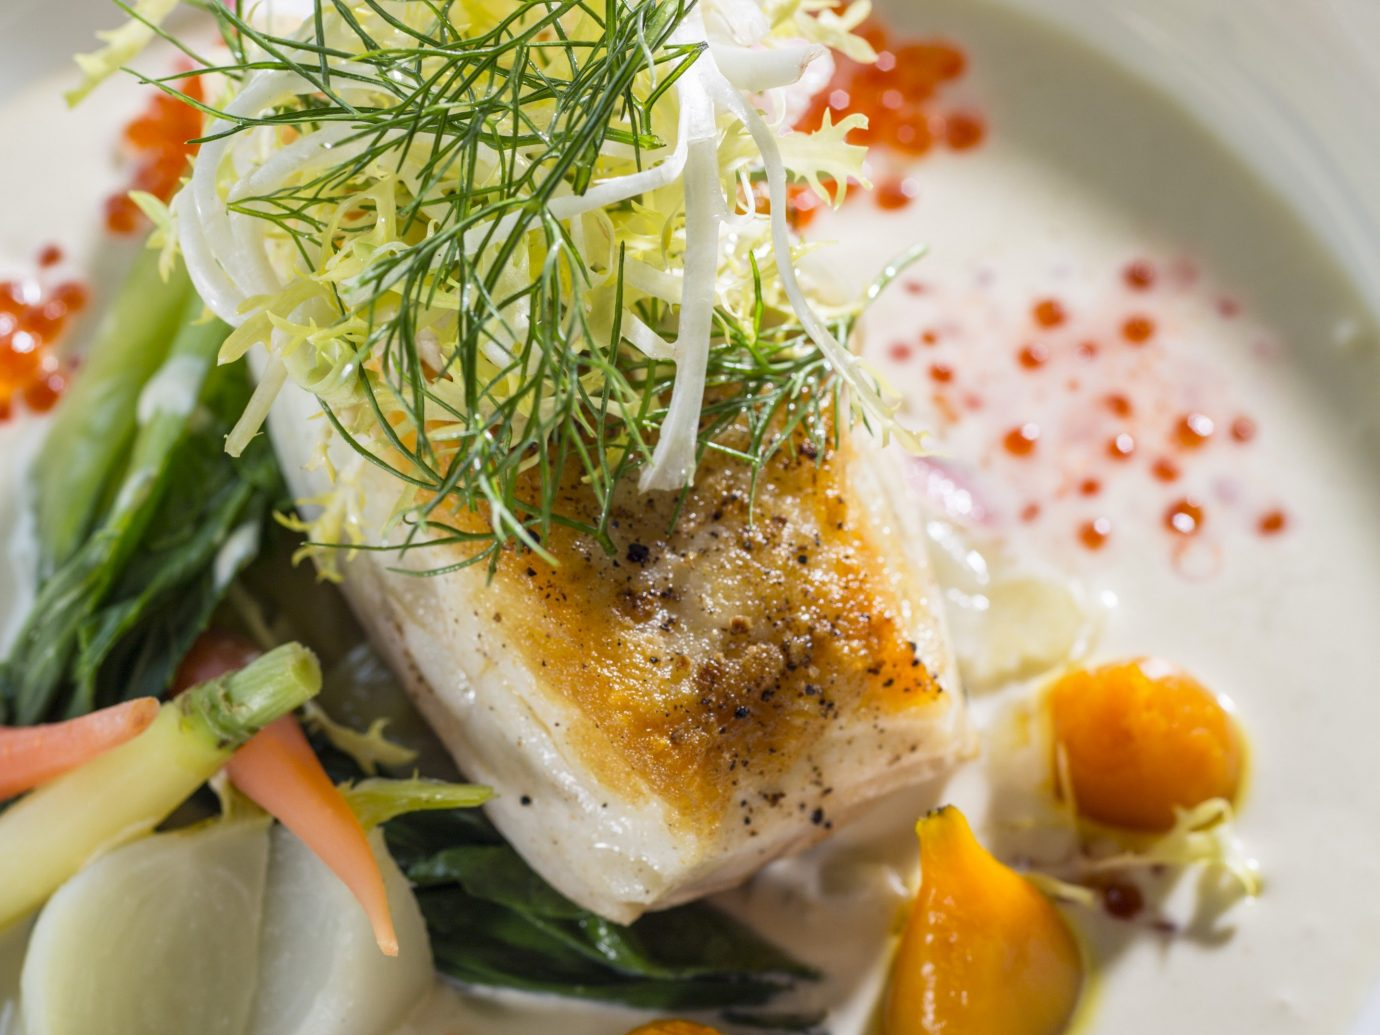 Boutique Hotels Hotels Outdoors + Adventure Trip Ideas Weekend Getaways plate food dish white fish meal produce cuisine smoked salmon garnish Seafood hors d oeuvre vegetable sauce meat